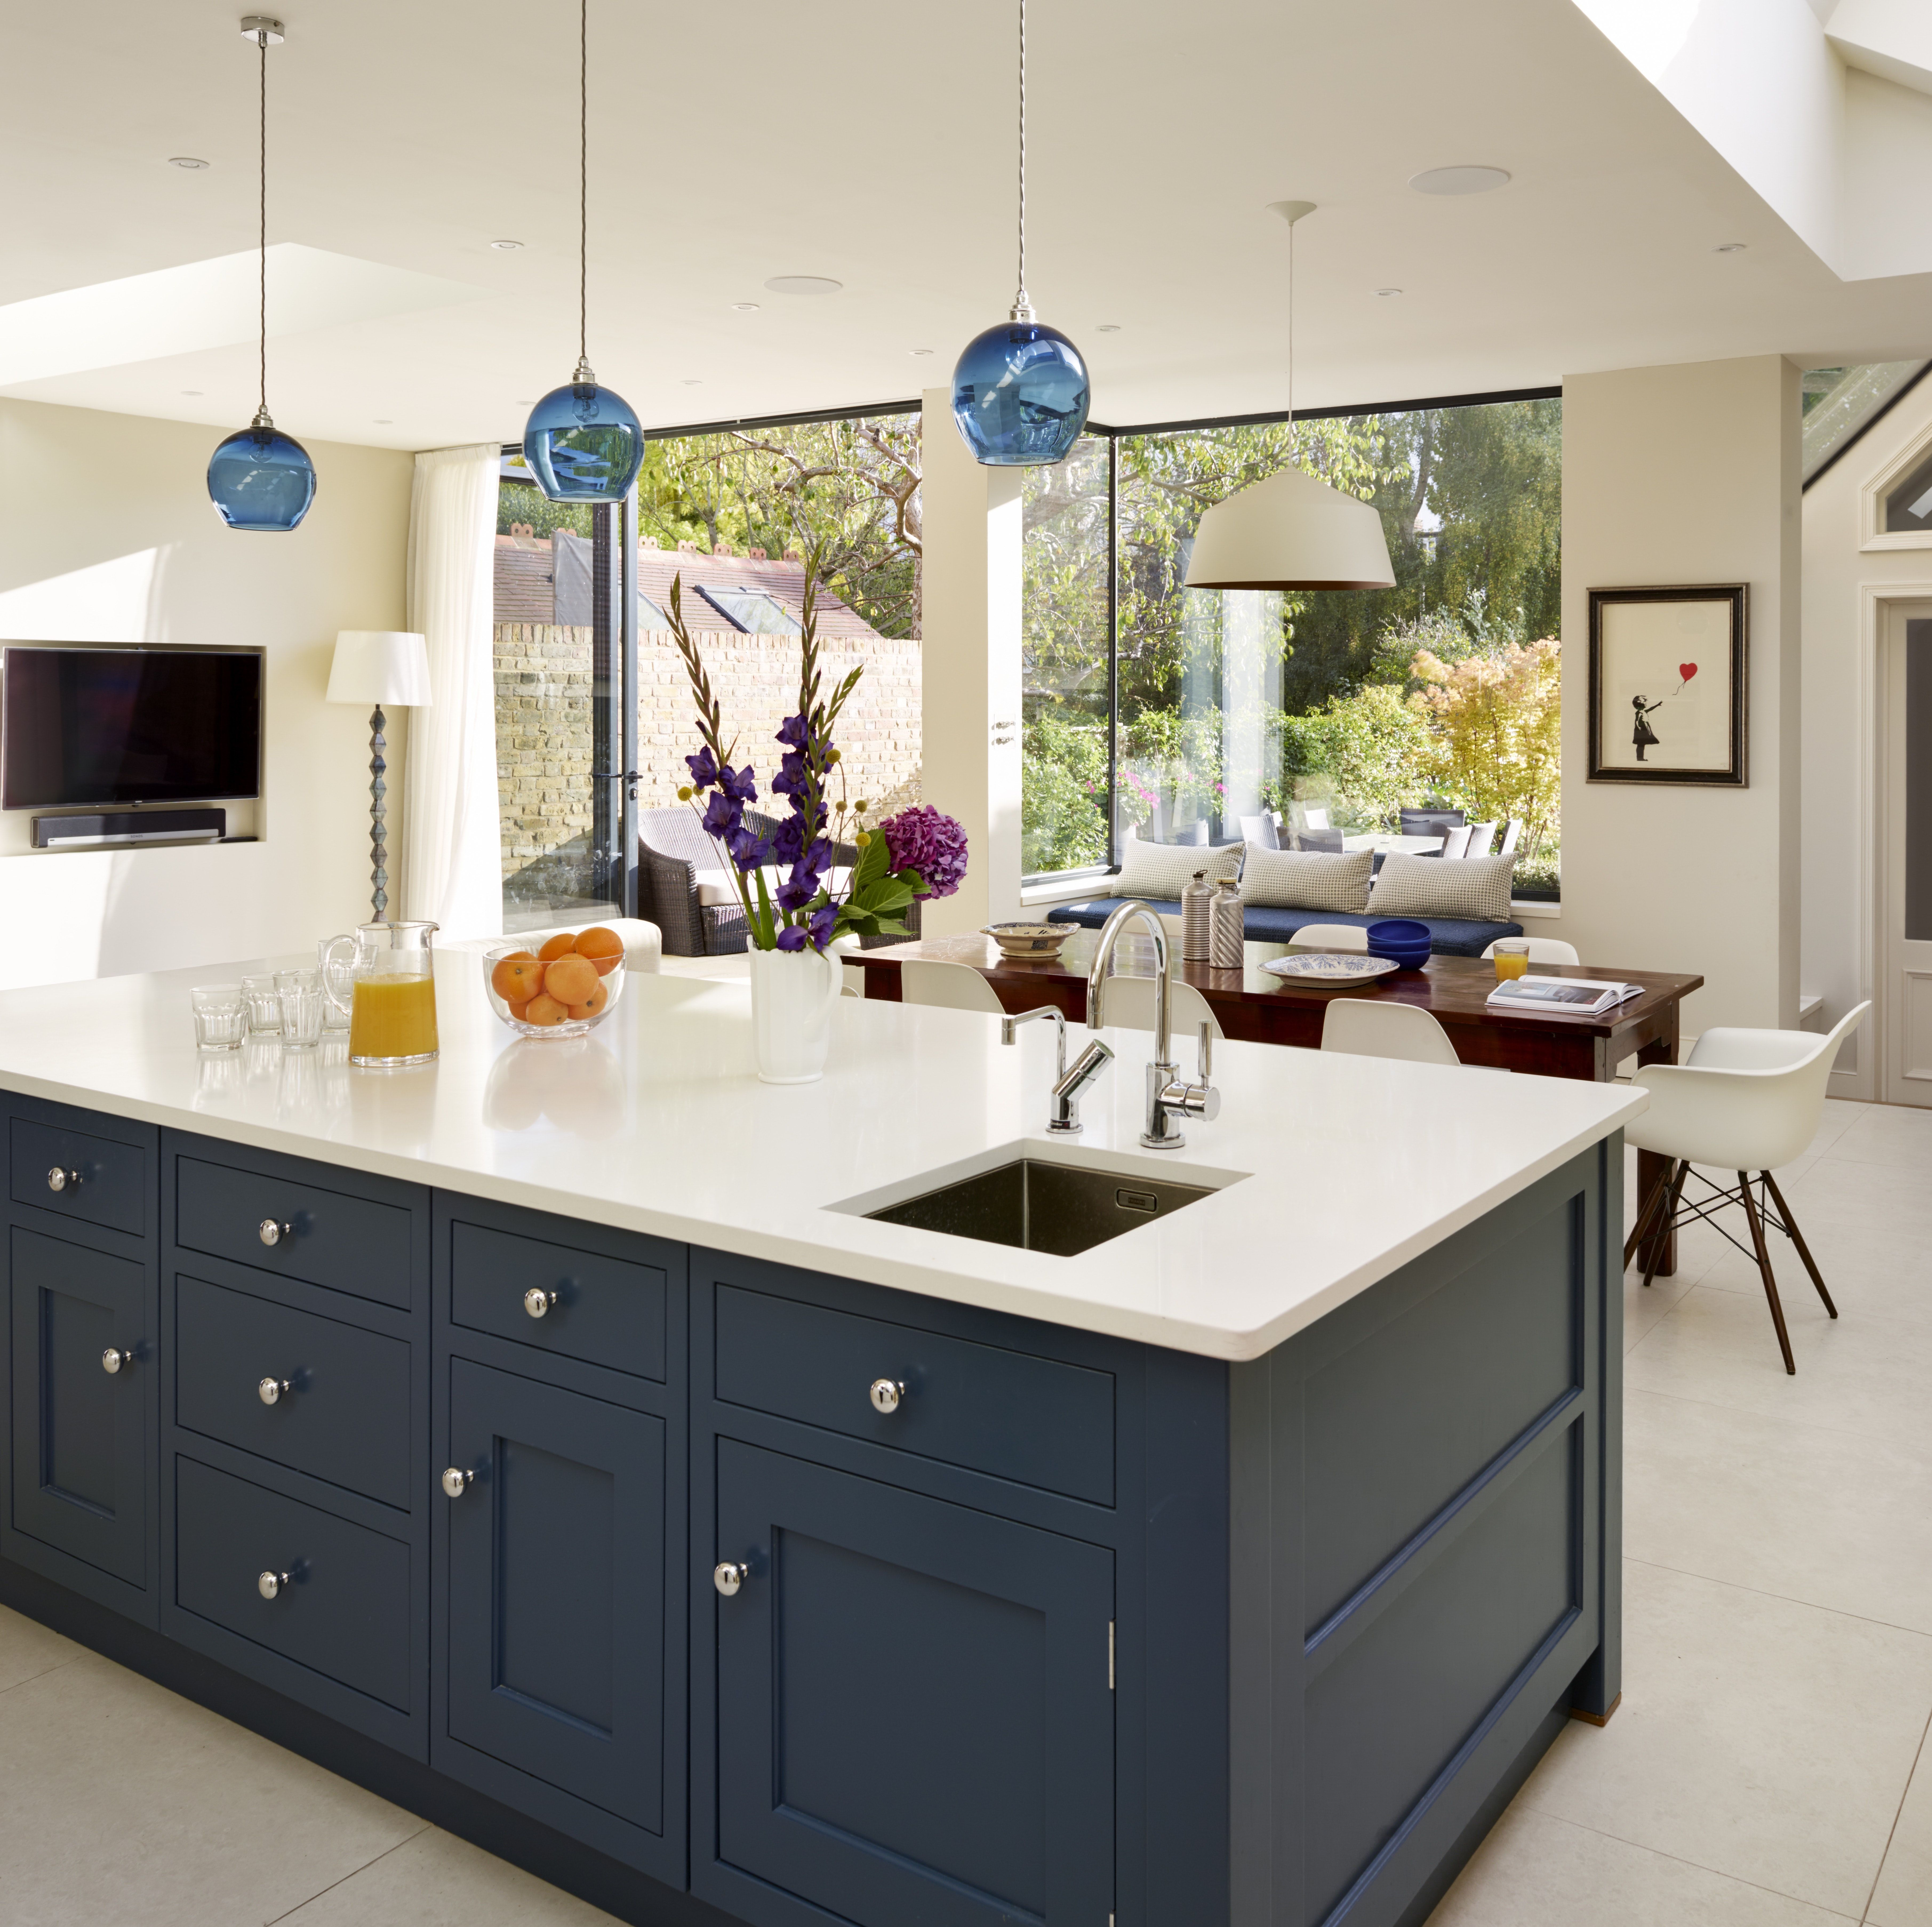 Semi Open Kitchen Designs: Pin On Projects To Try